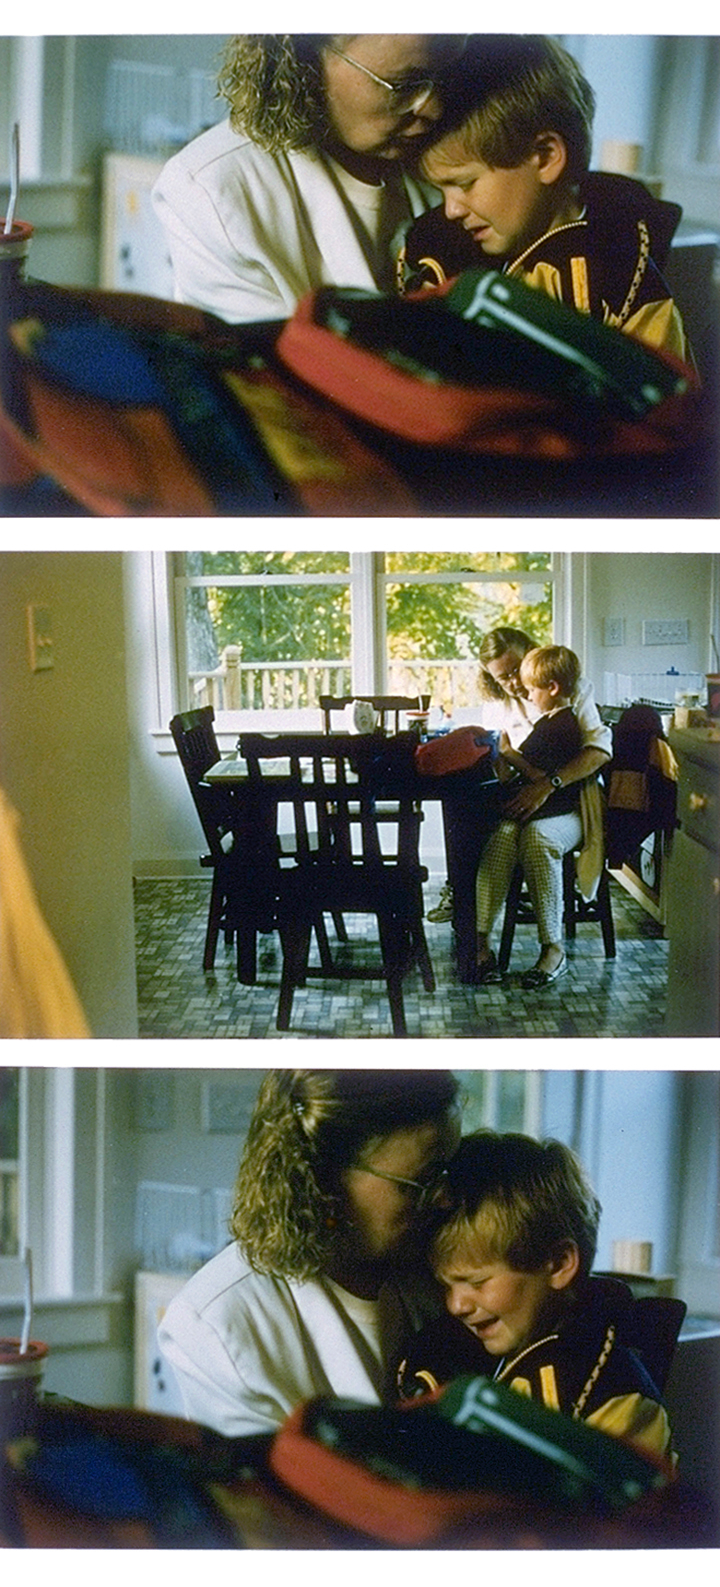 T1_129_pk147 94 B6.29 0003_cd 3258 files_3258-0078_Lg.jpg